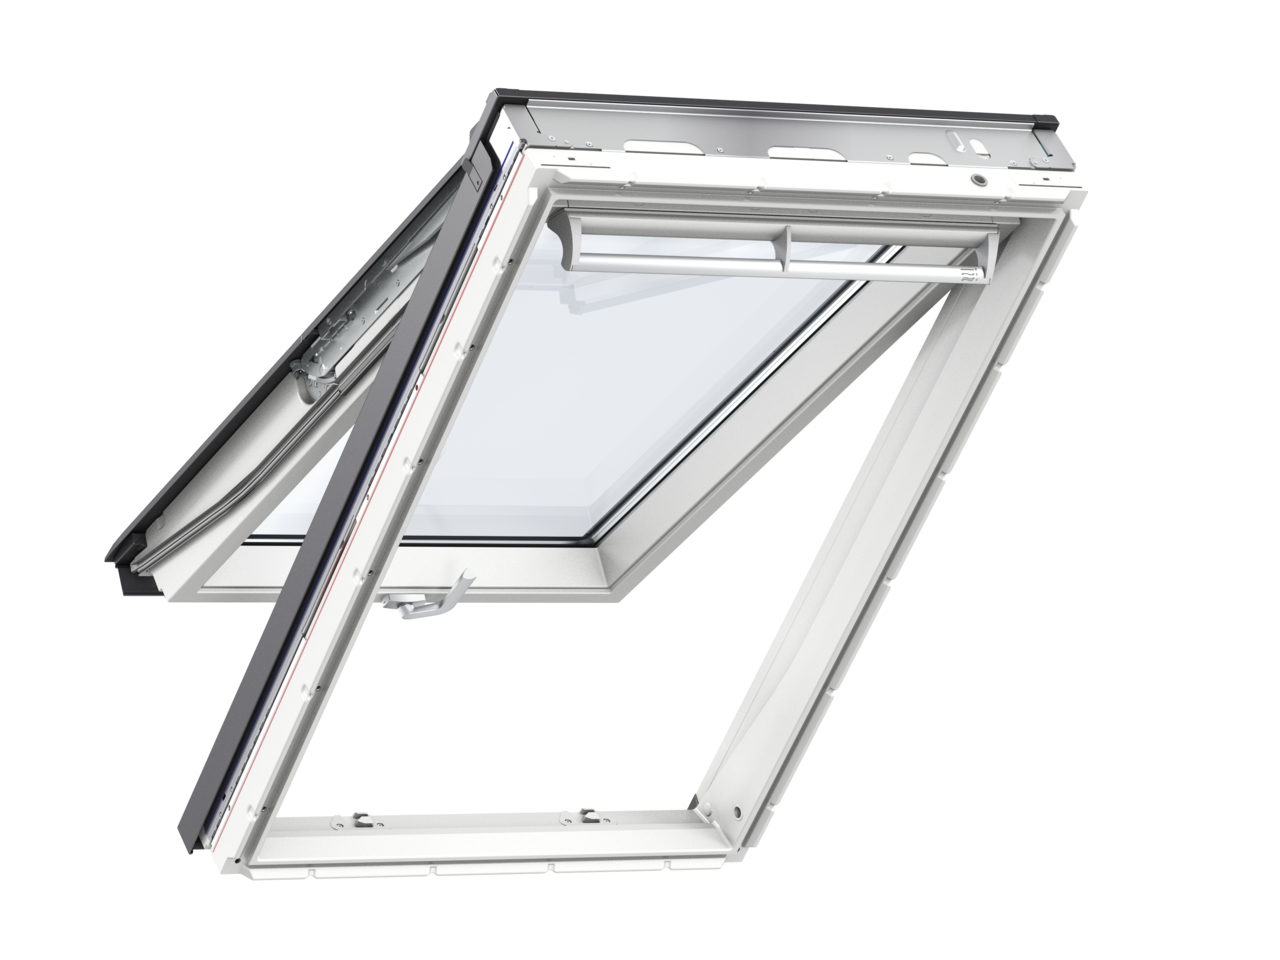 Velux GPU MK06 780 x 1180mm Top Hung 62Pane Roof Window - White Polyurethane